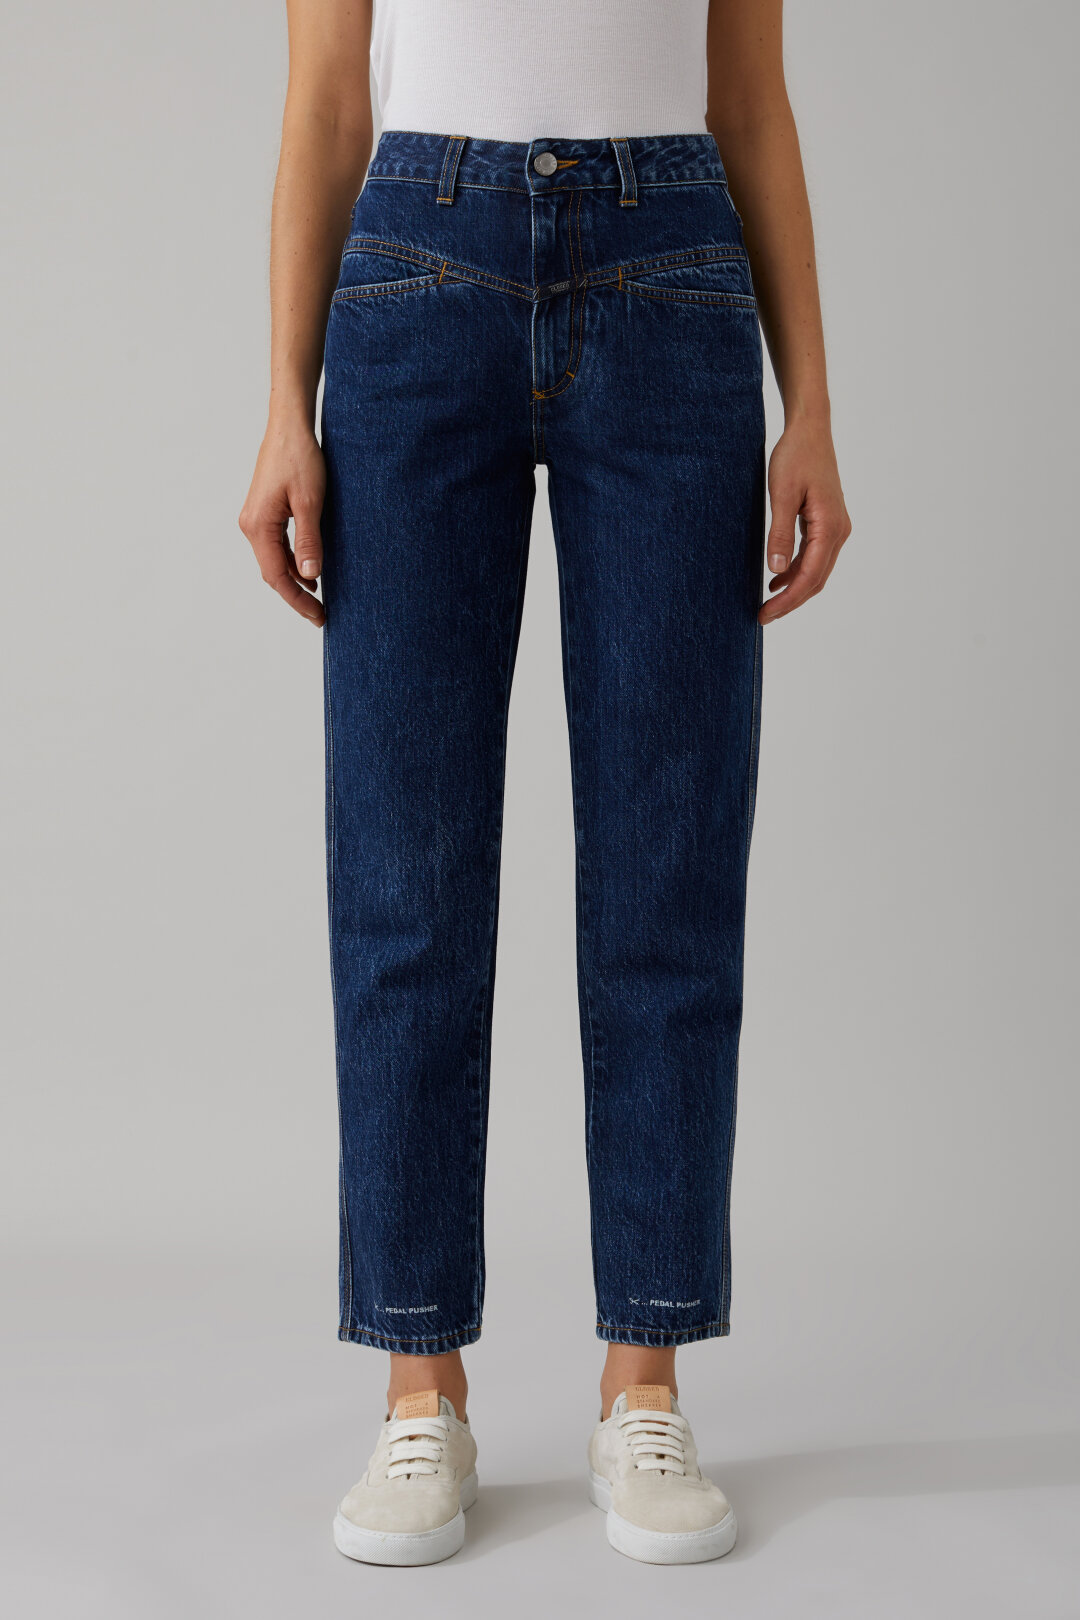 Pedal Pusher Indigo Denim